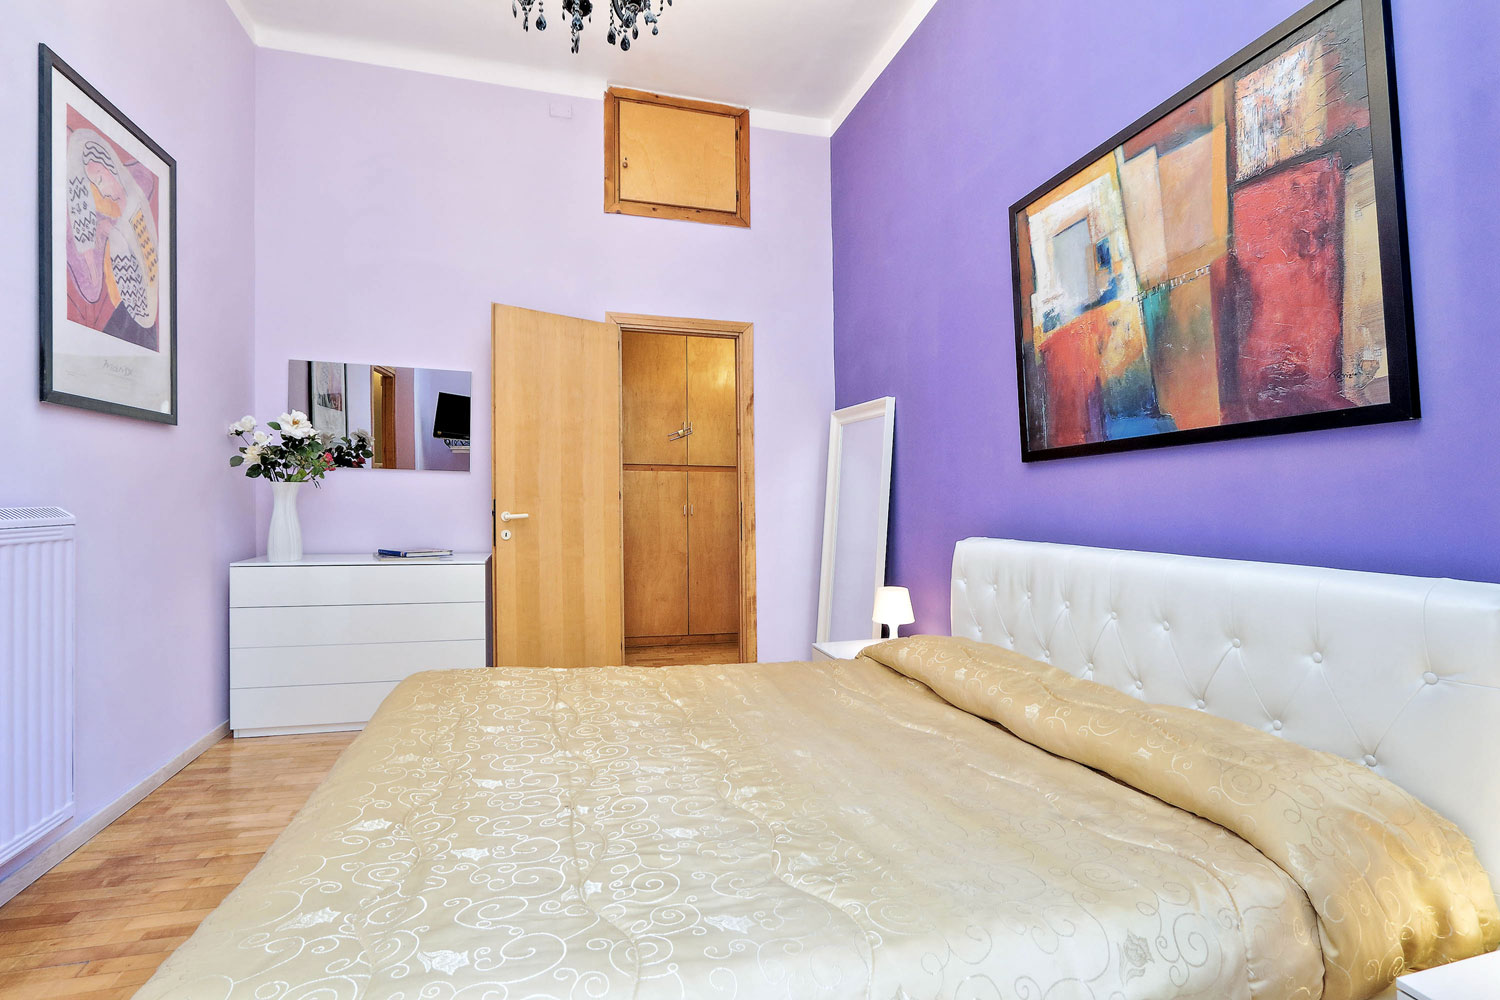 Self Catering Apartment in Rome